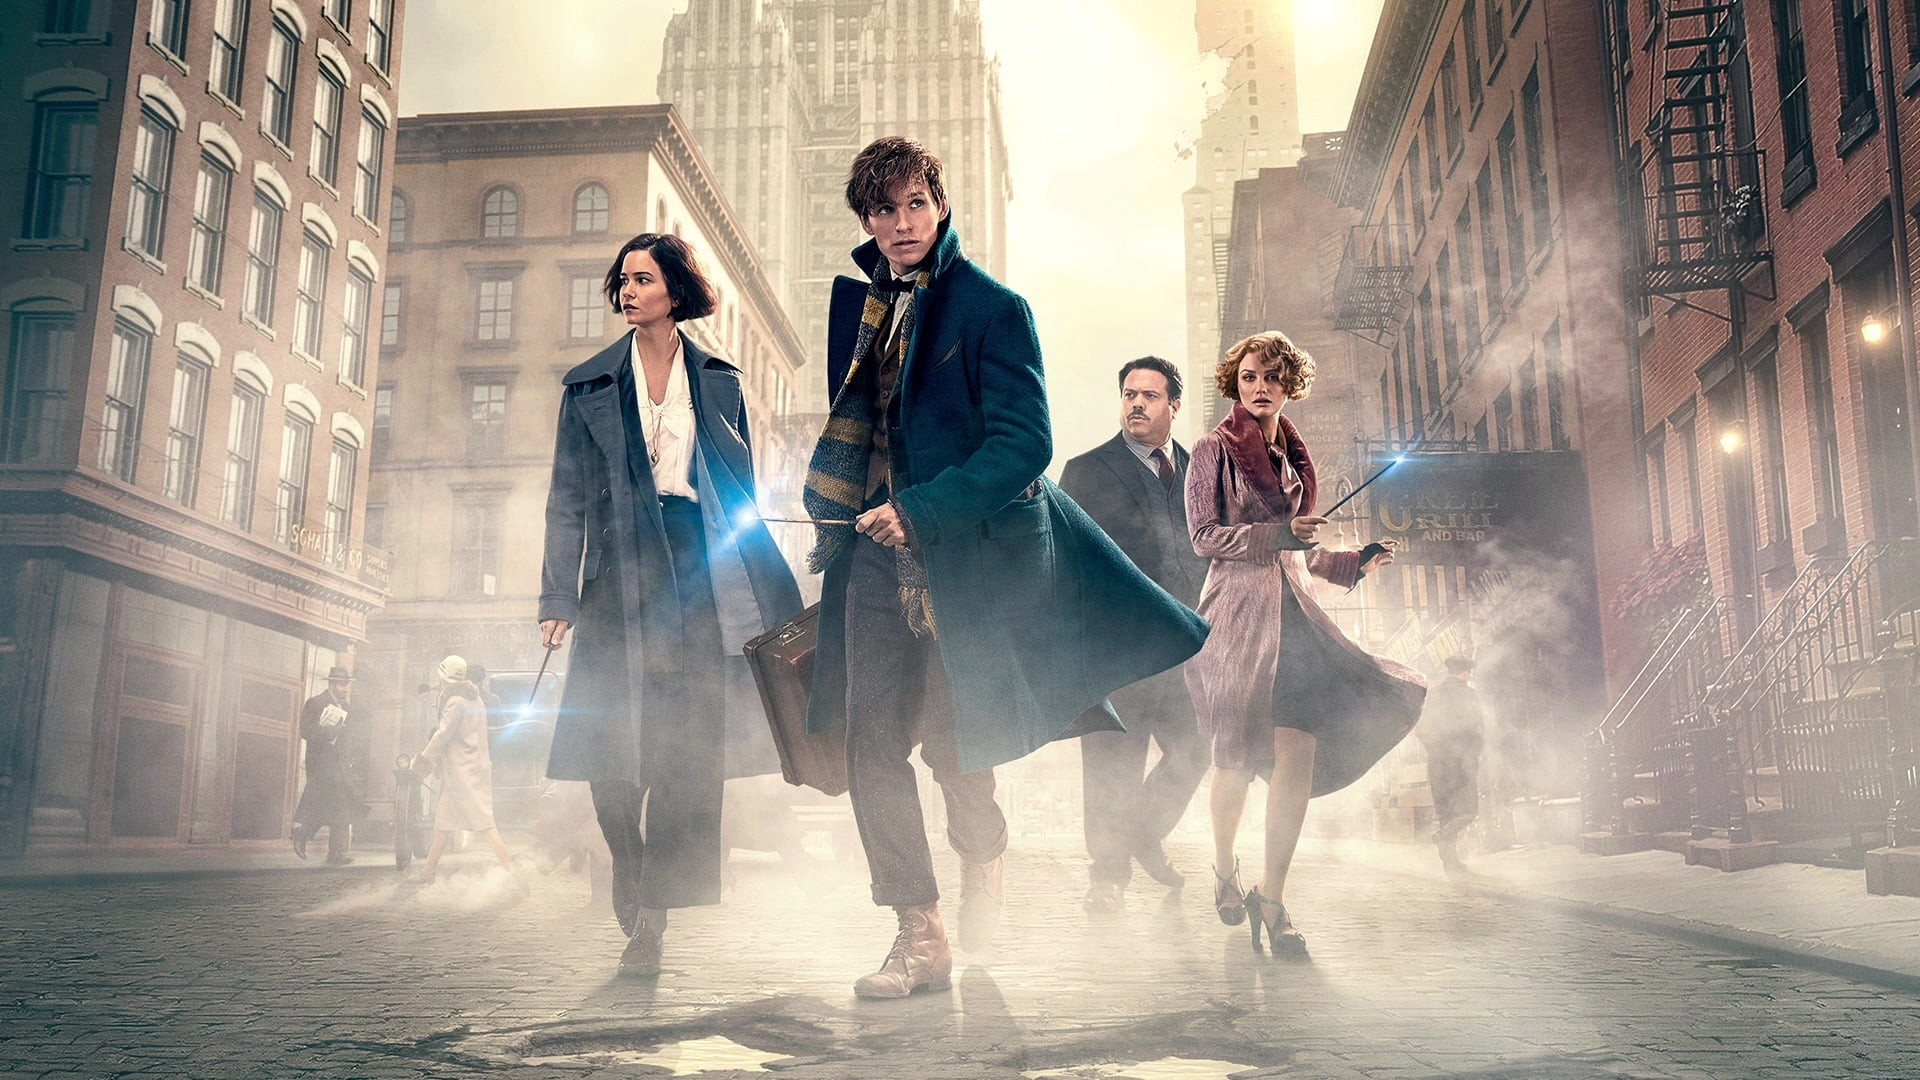 fantastic beasts and where to find them online free 123movies